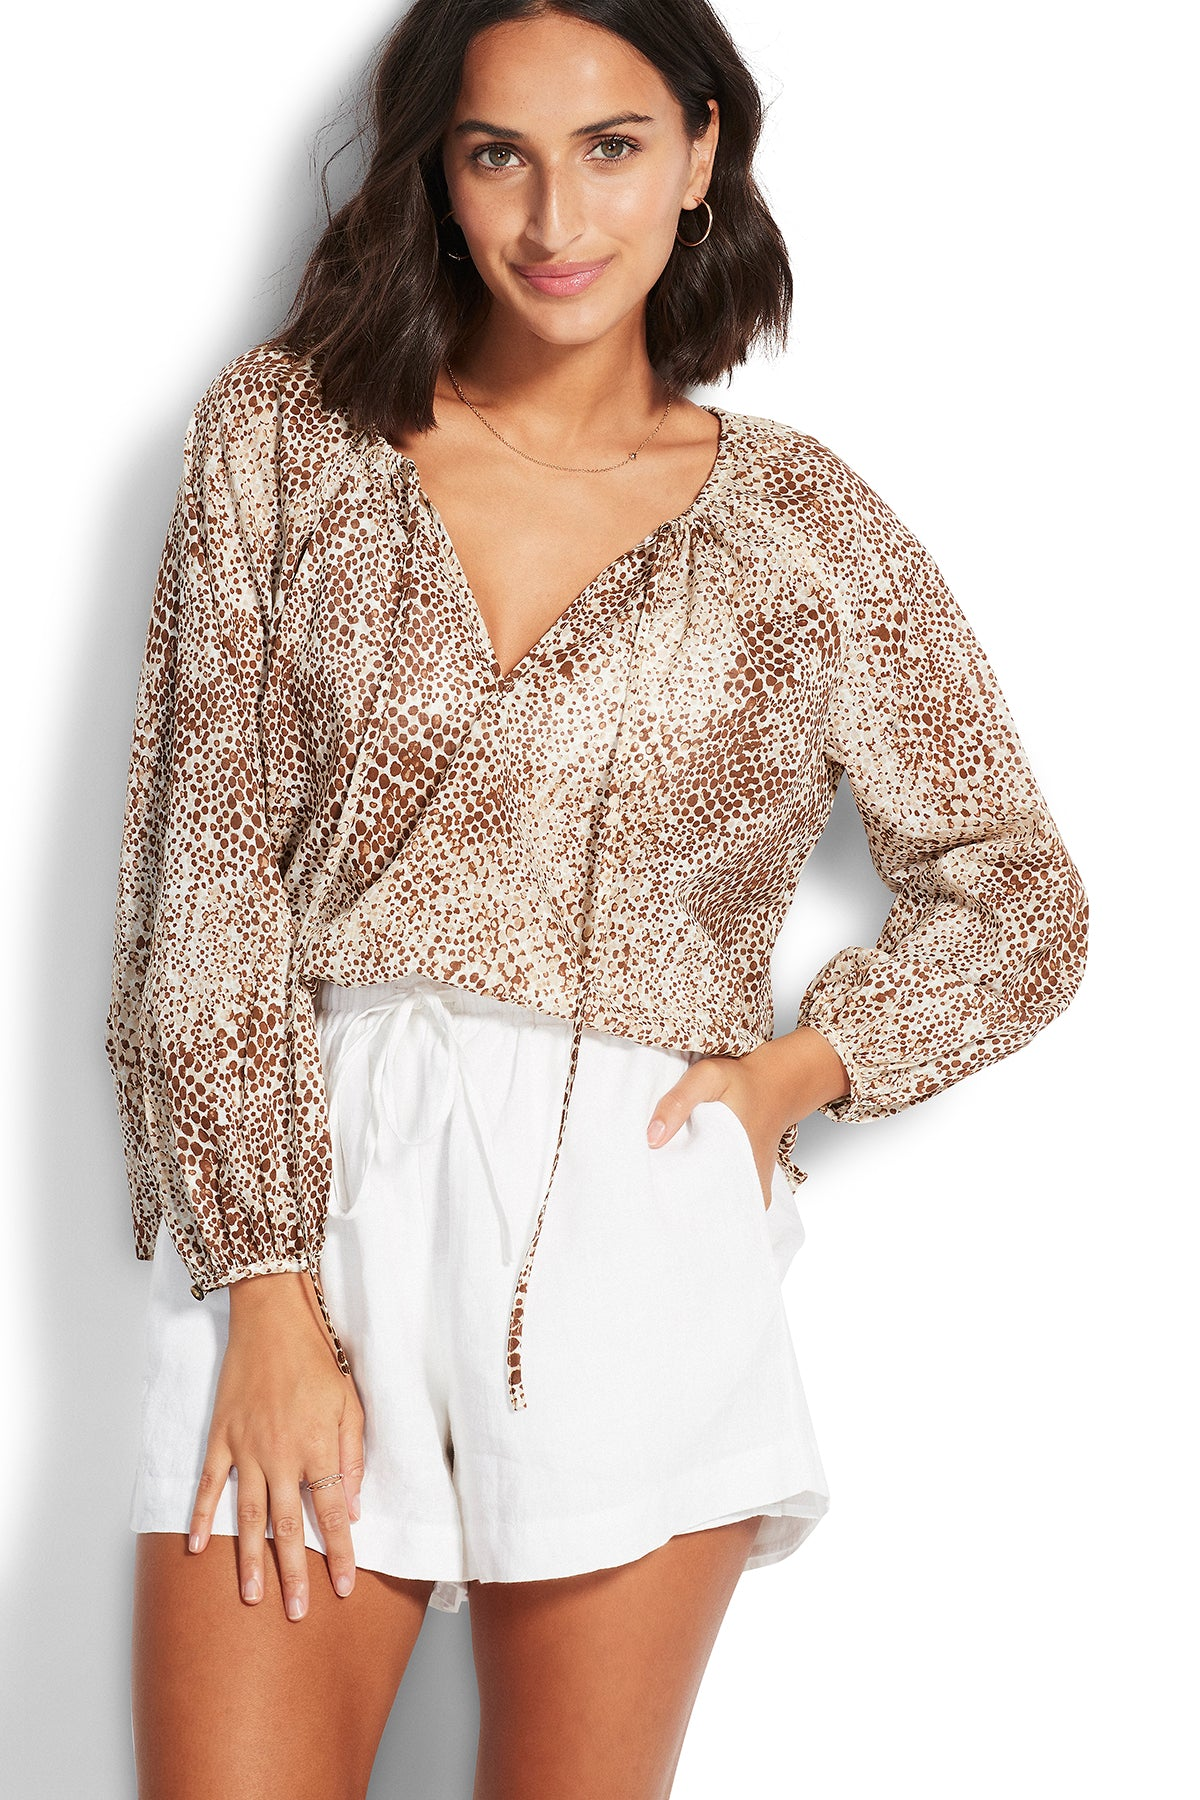 Seafolly Serpentine Boho Top - Chocolate